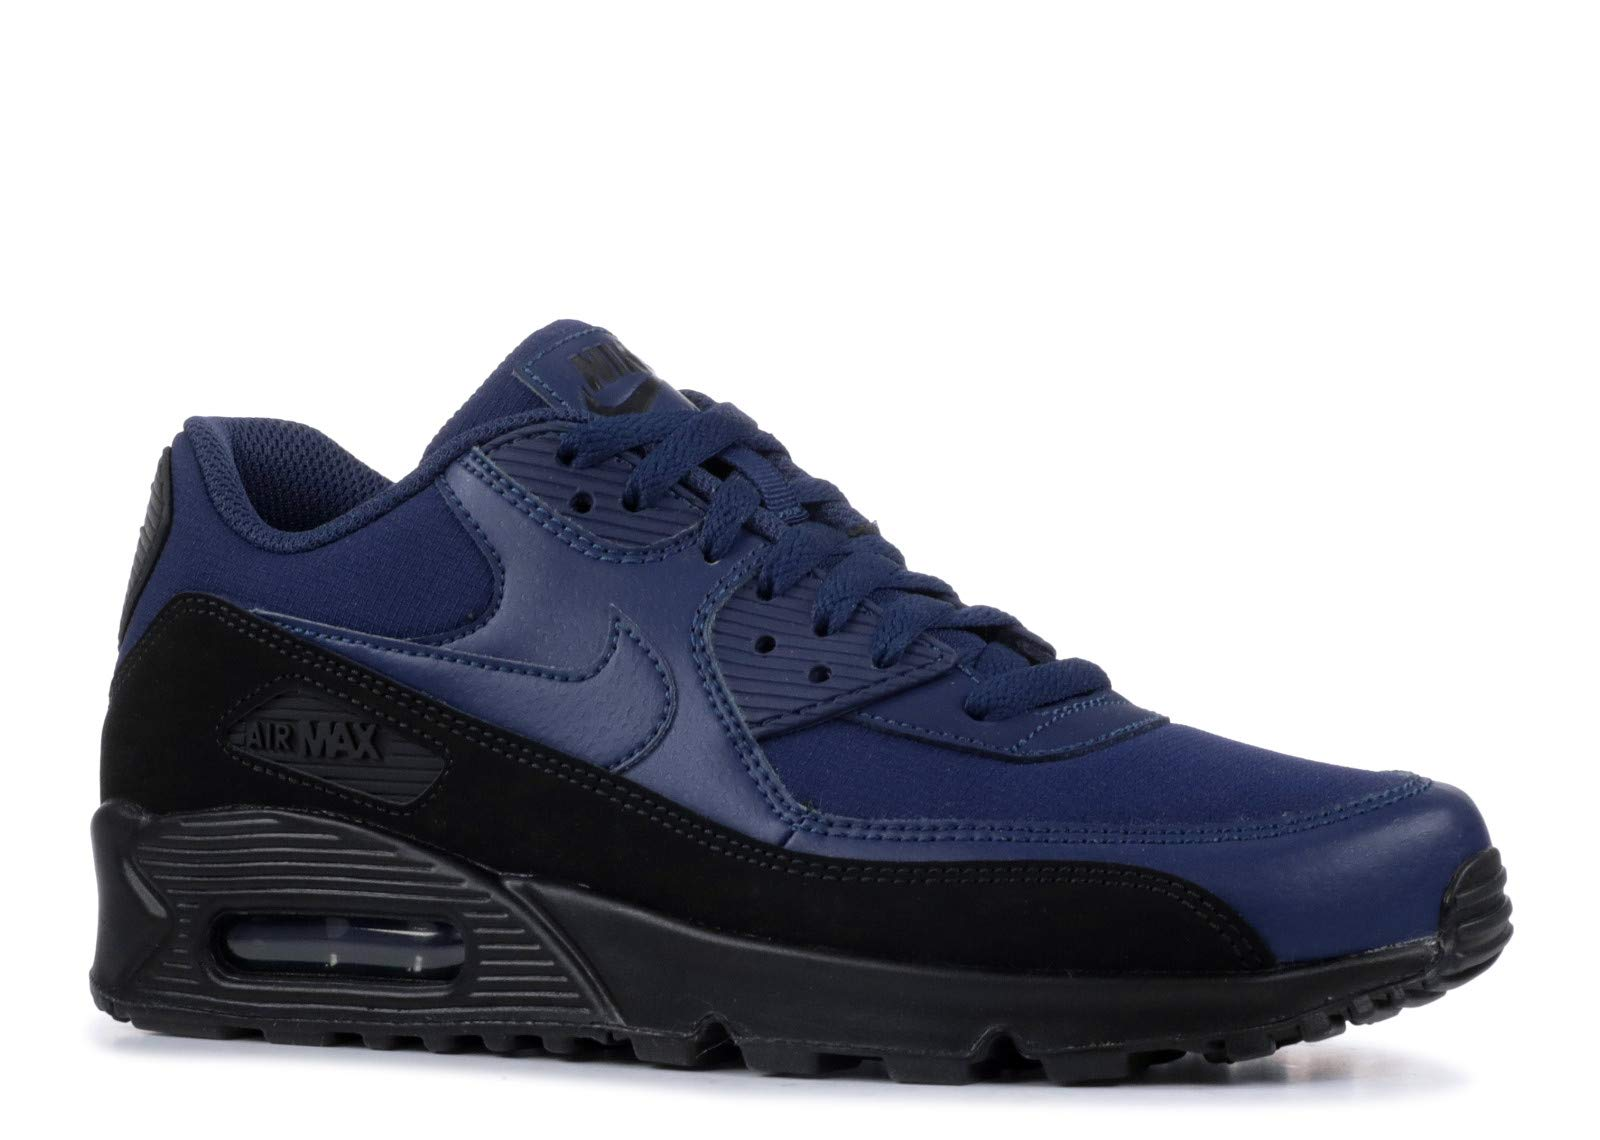 huge selection of a7aa3 b5228 Galleon - Nike Air Max 90 Essential Mens Aj1285-007 Size 9.5